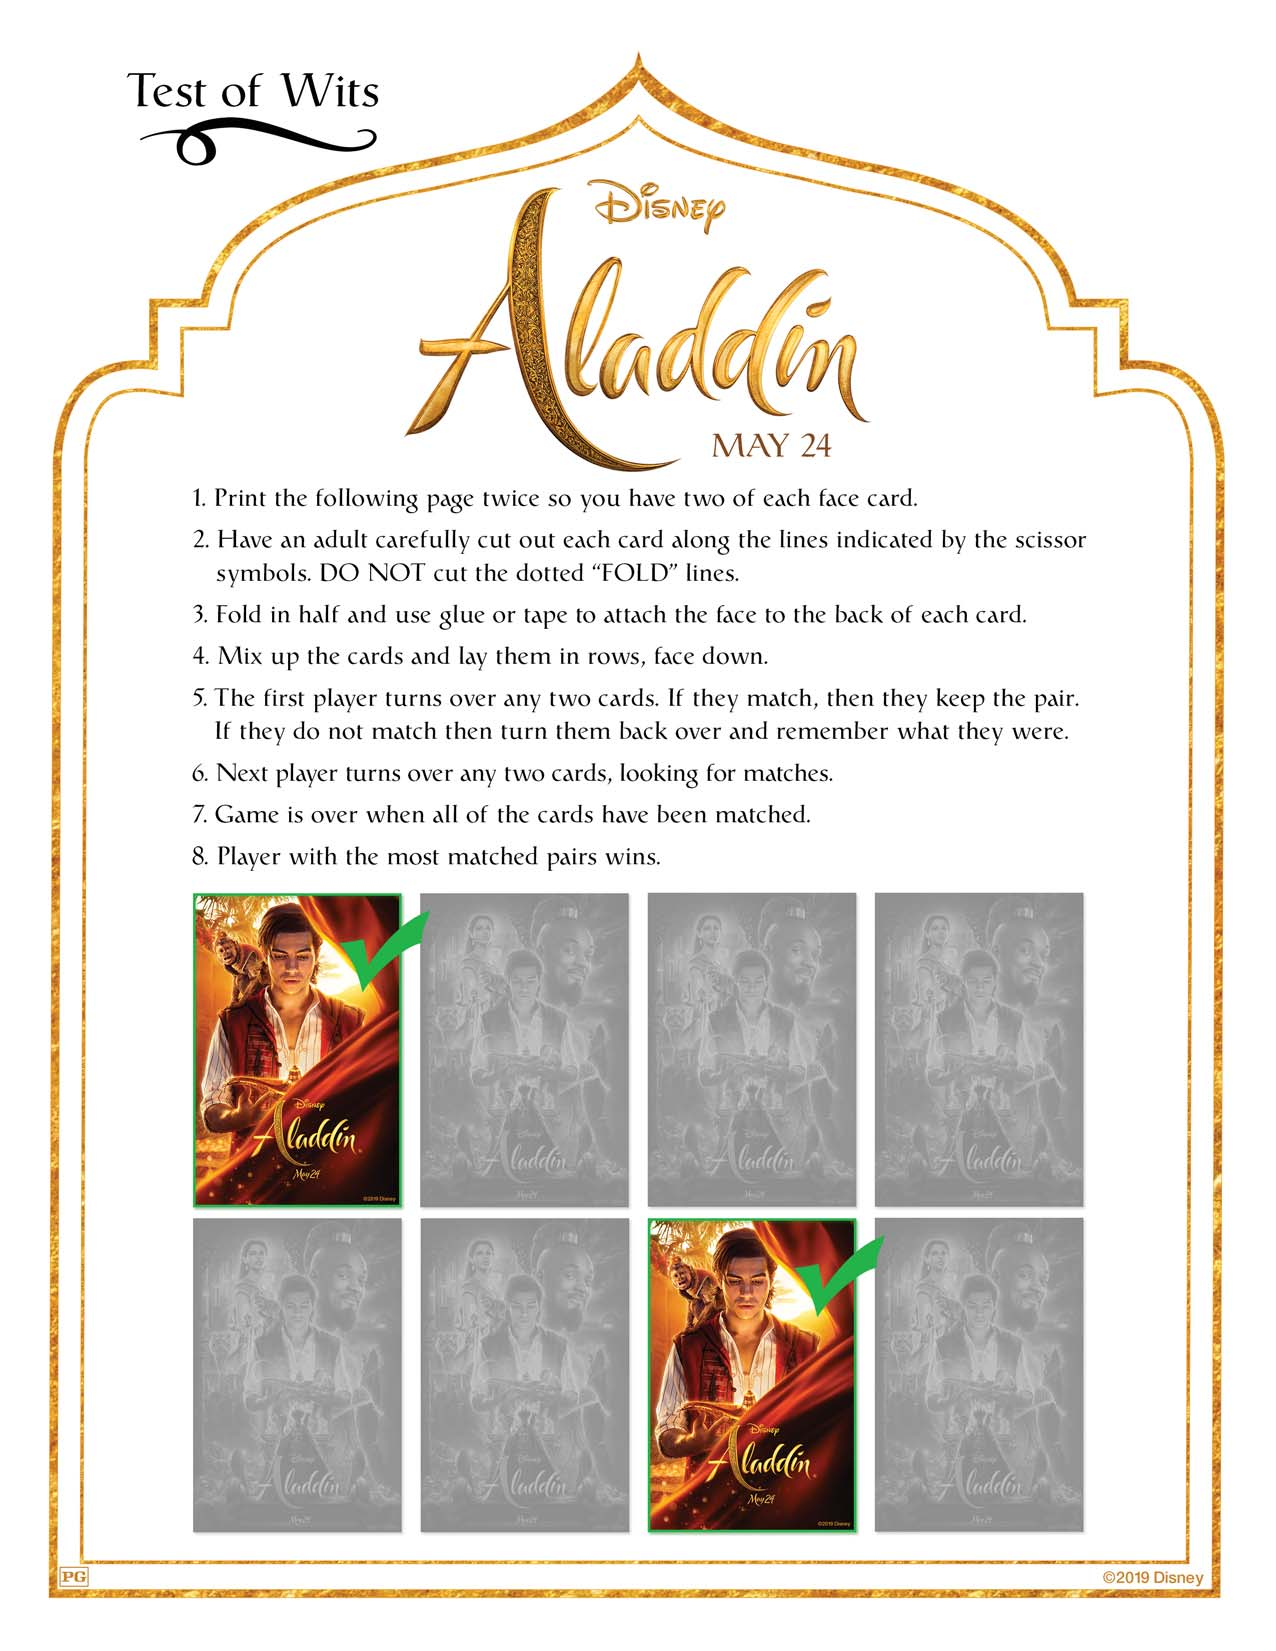 Aladdin card printable instructions